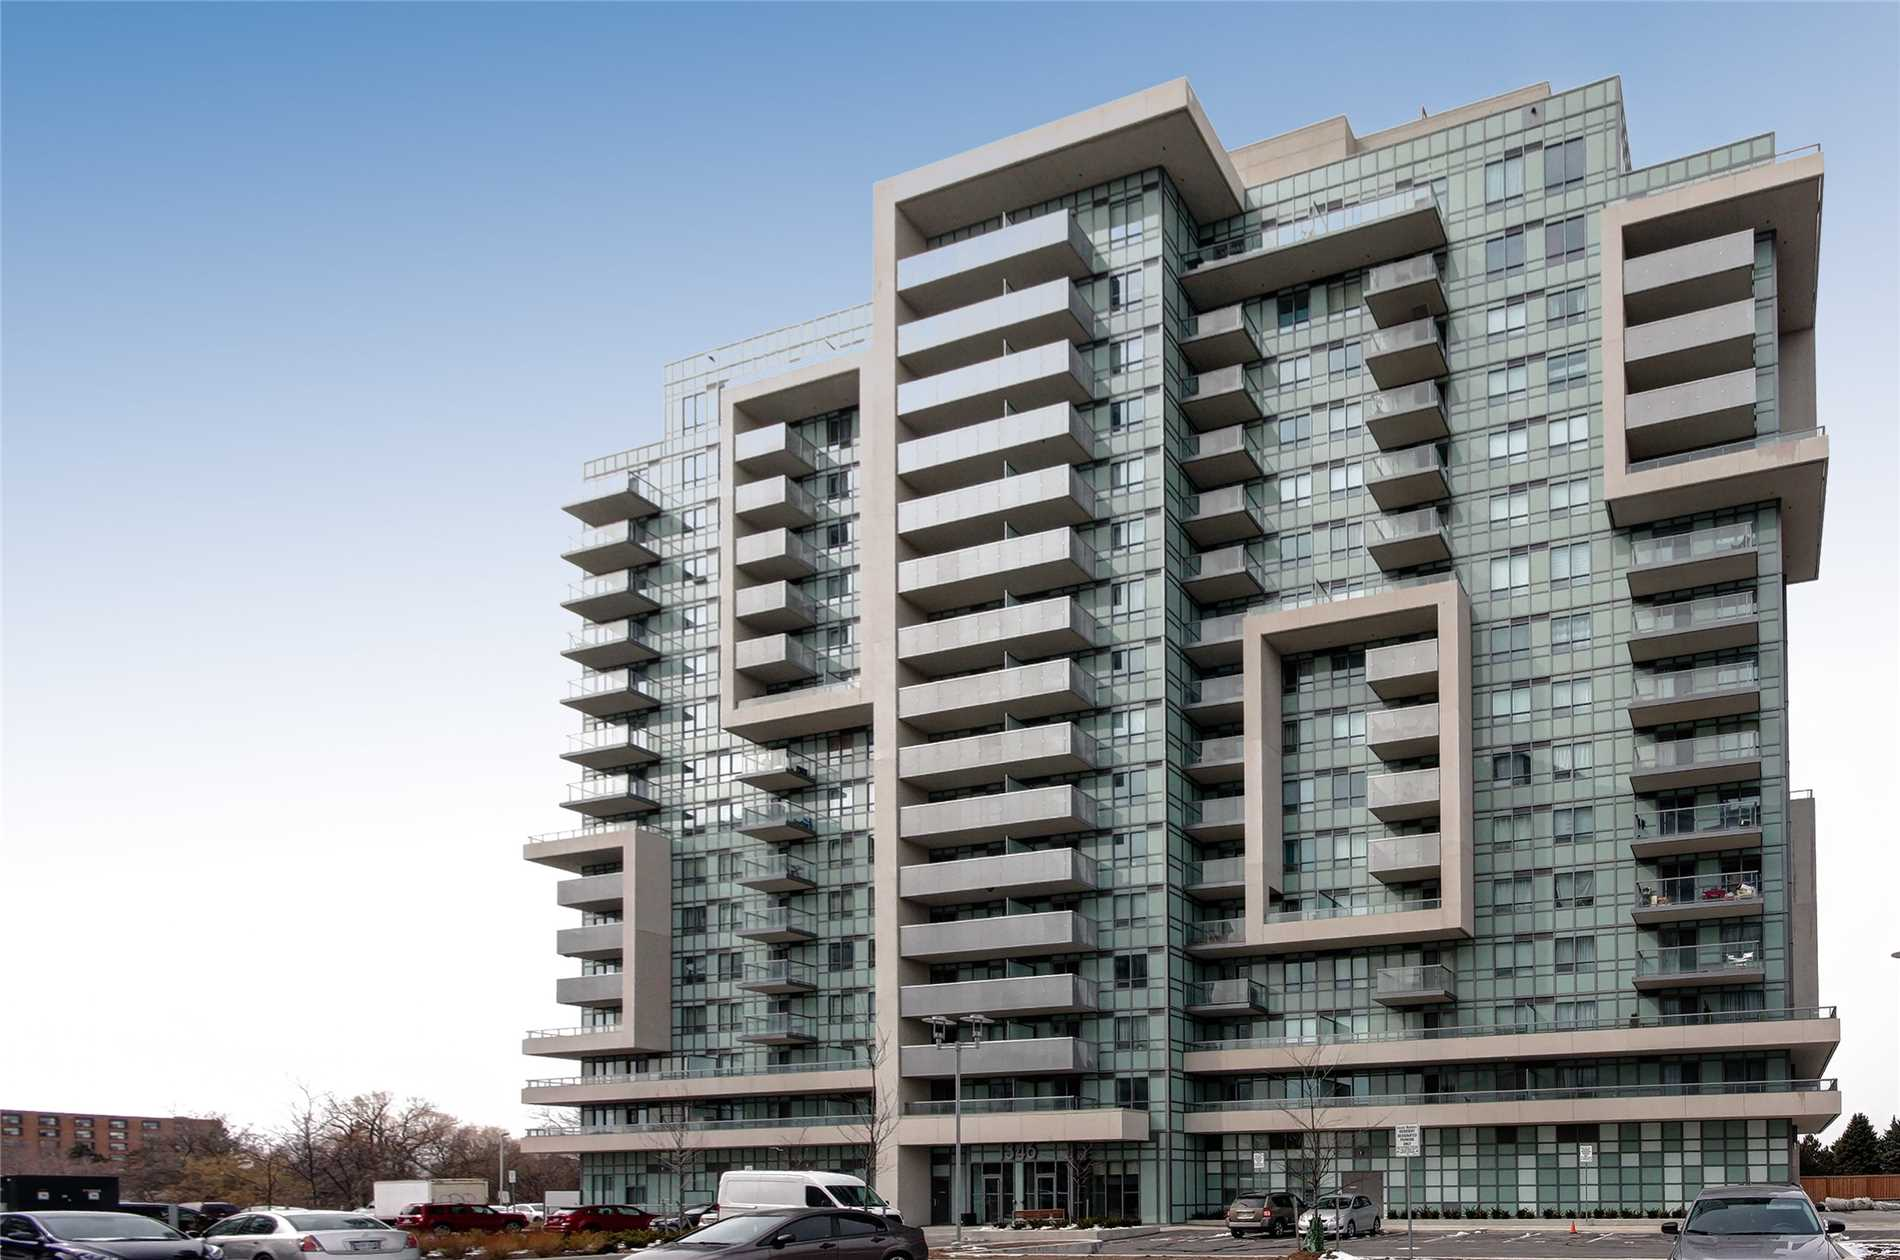 Bright And Spacious 800Sqf 2 Bedroom, 2 Full Bath Condo. 1 Parking. Stainless Steel Appliances. Close To Eglinton Go Train, And Kennedy Ttc Subway. Access To Walking Trails And Sport Amenities In The Park Next Door